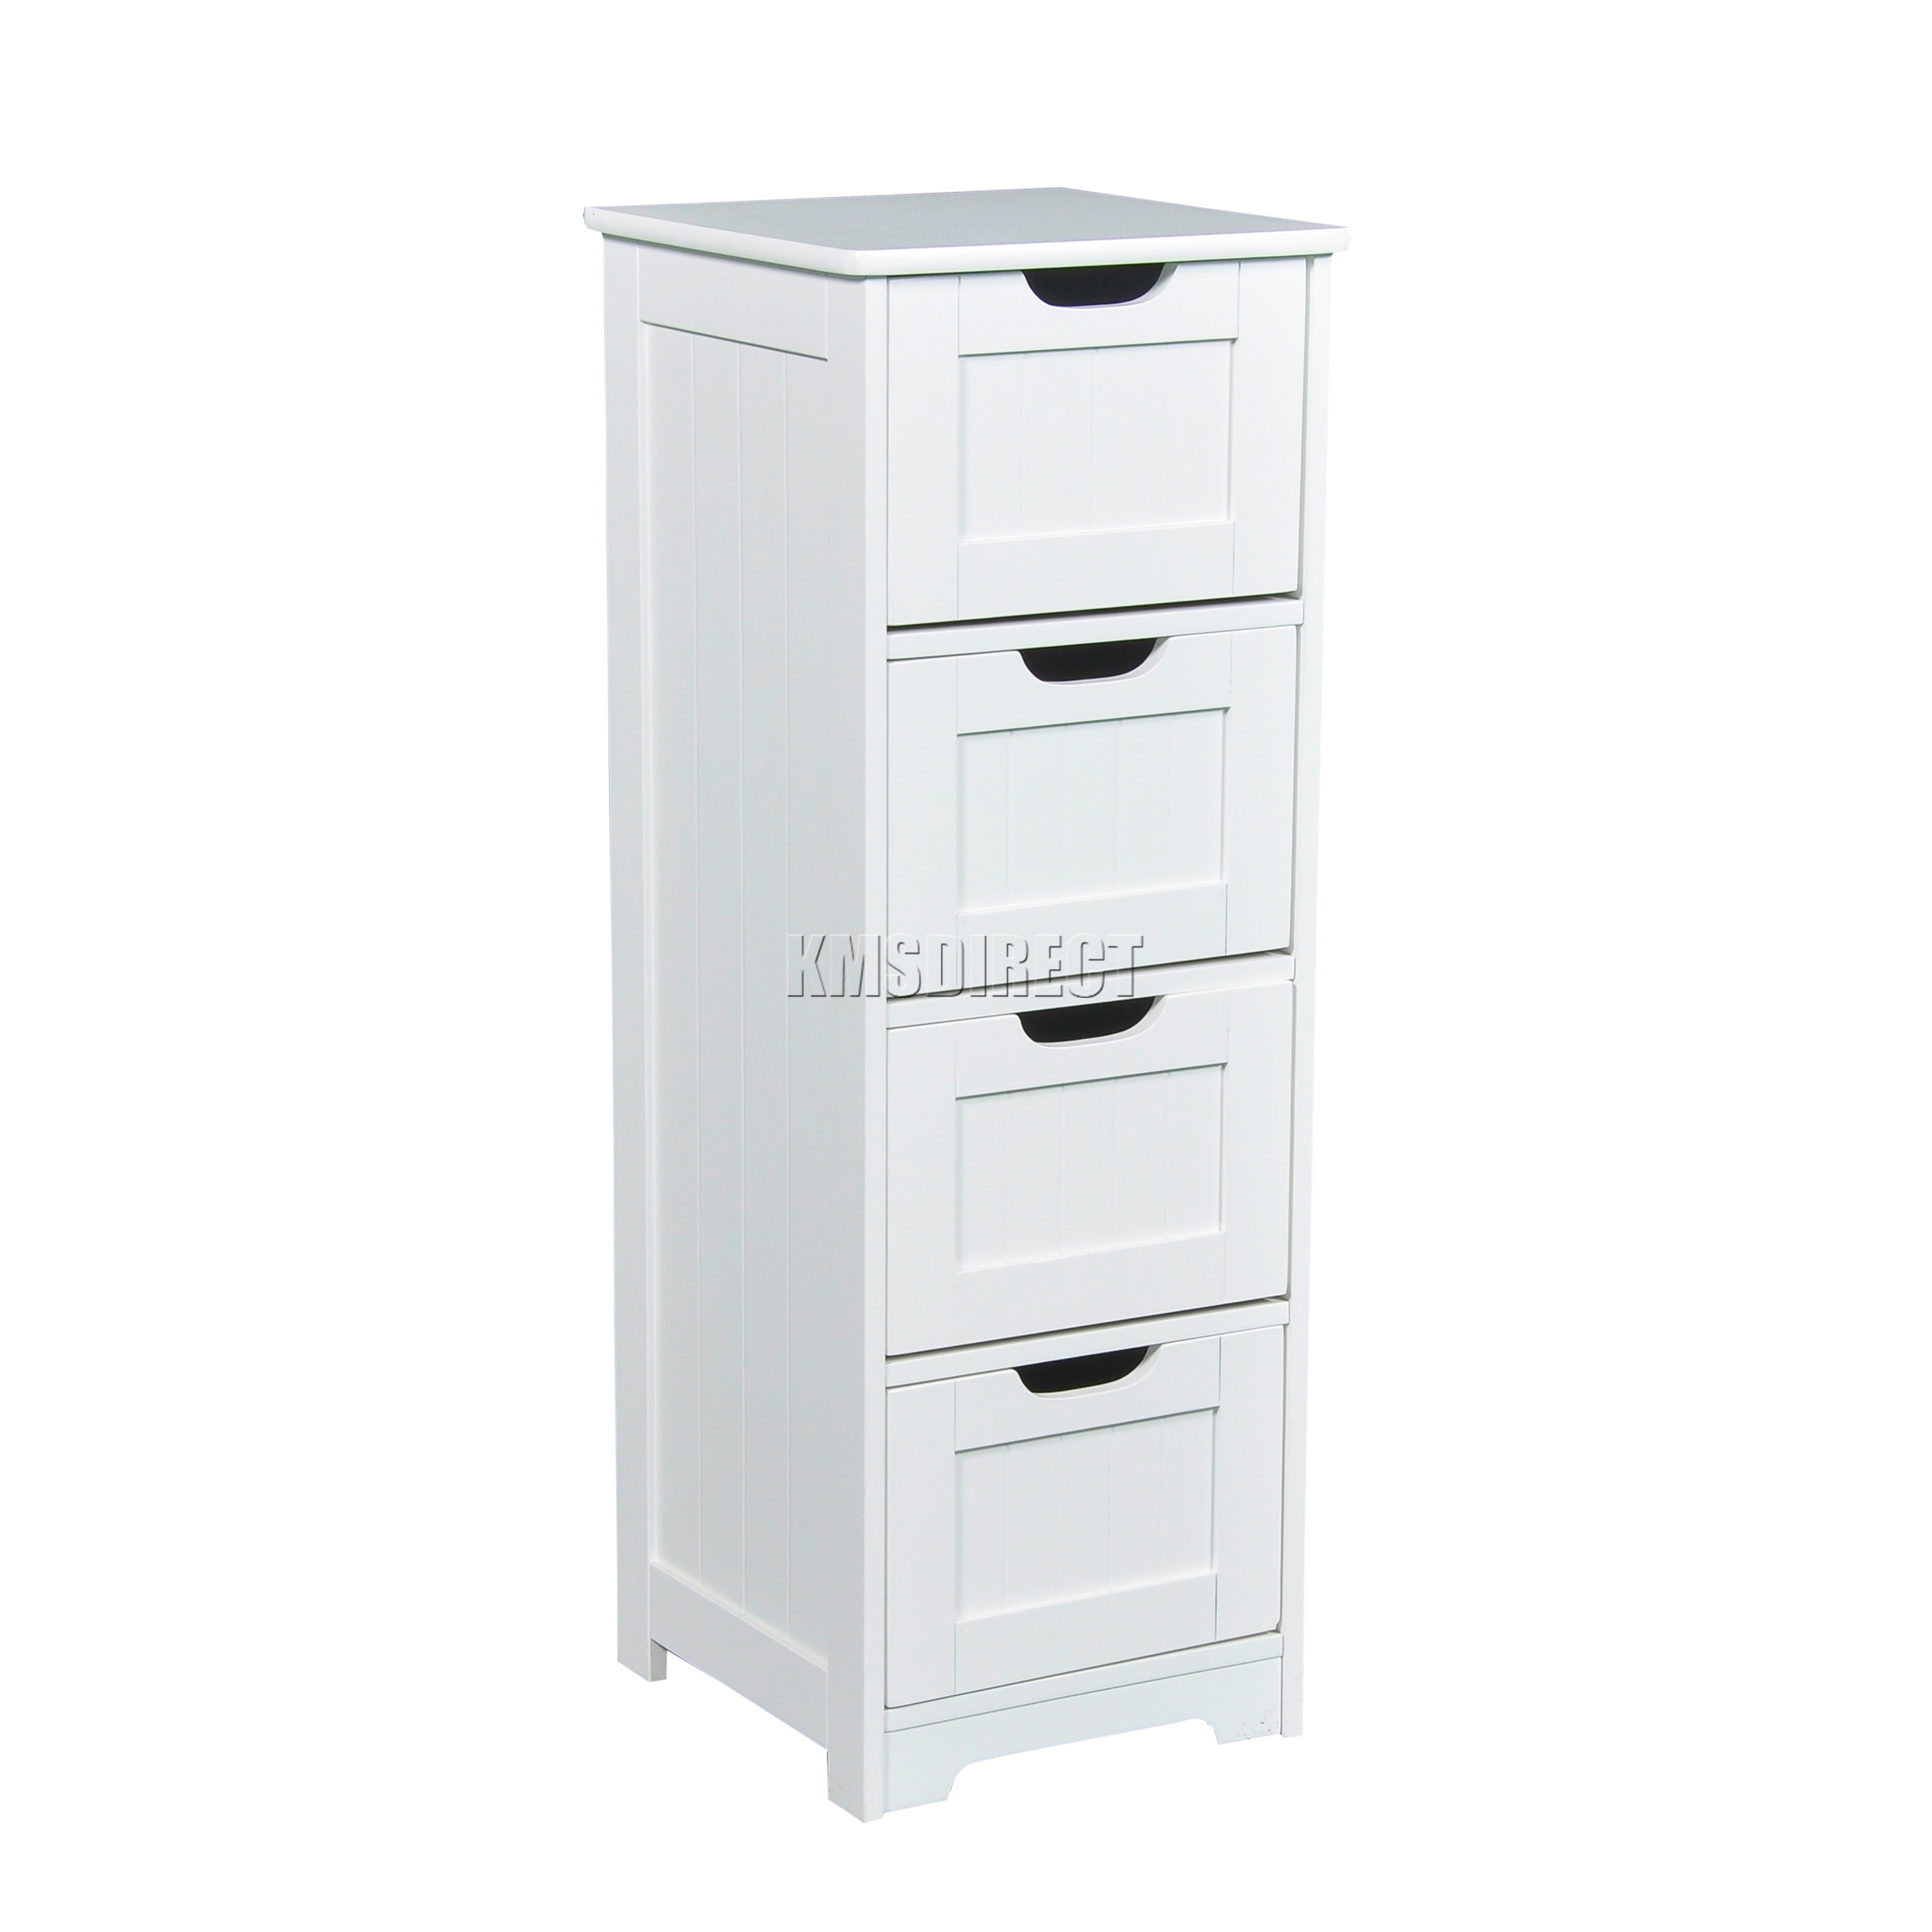 Foxhunter white wooden 4 drawer bathroom storage cupboard for White wooden bathroom drawers